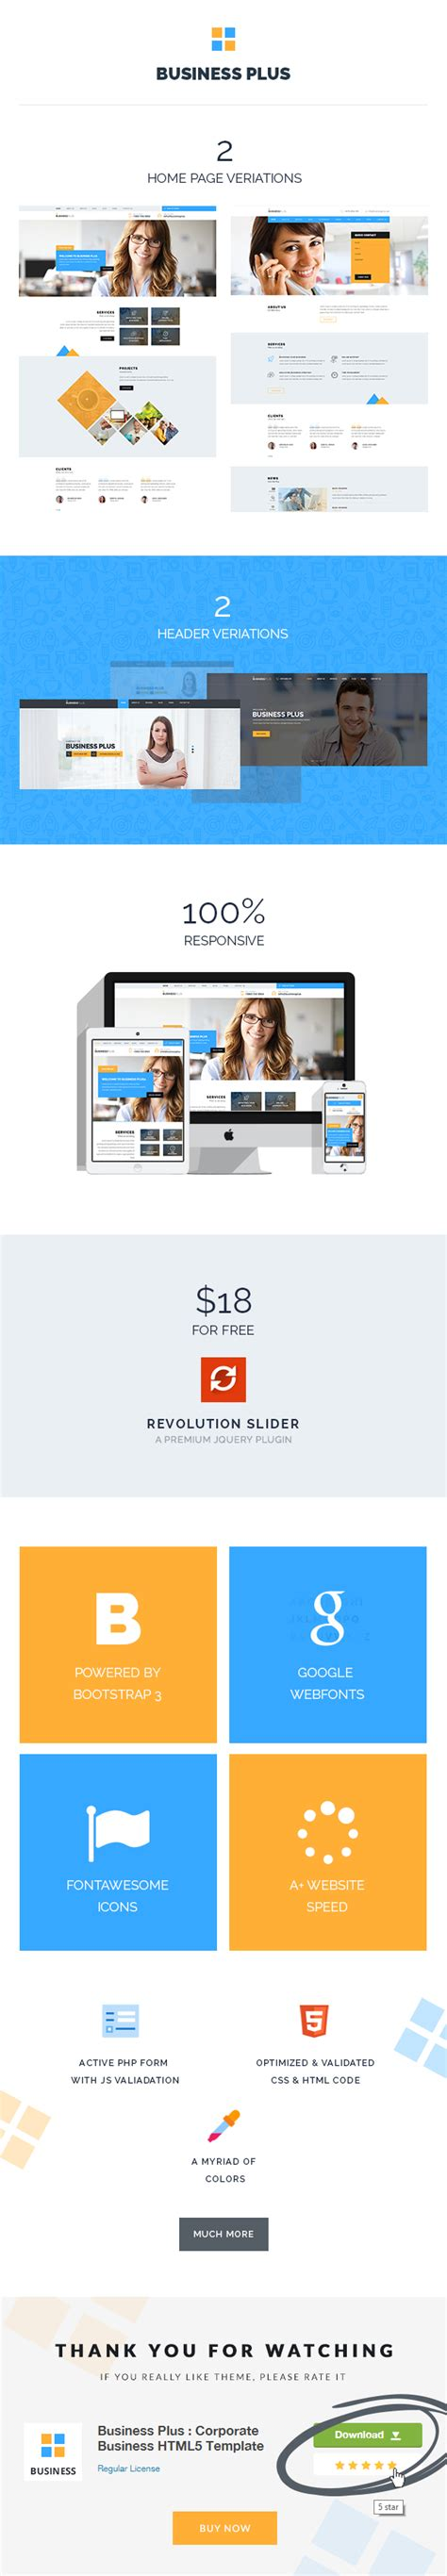 corporate html5 templates business plus corporate business html5 template by